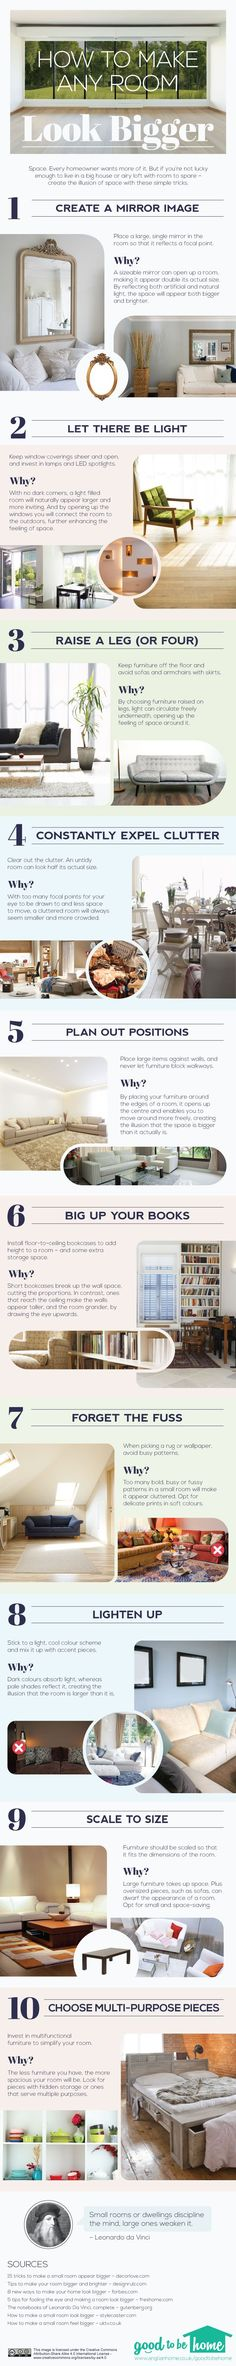 good to be home, make a room look bigger, small living, small space living tips, how to make a small room look bigger